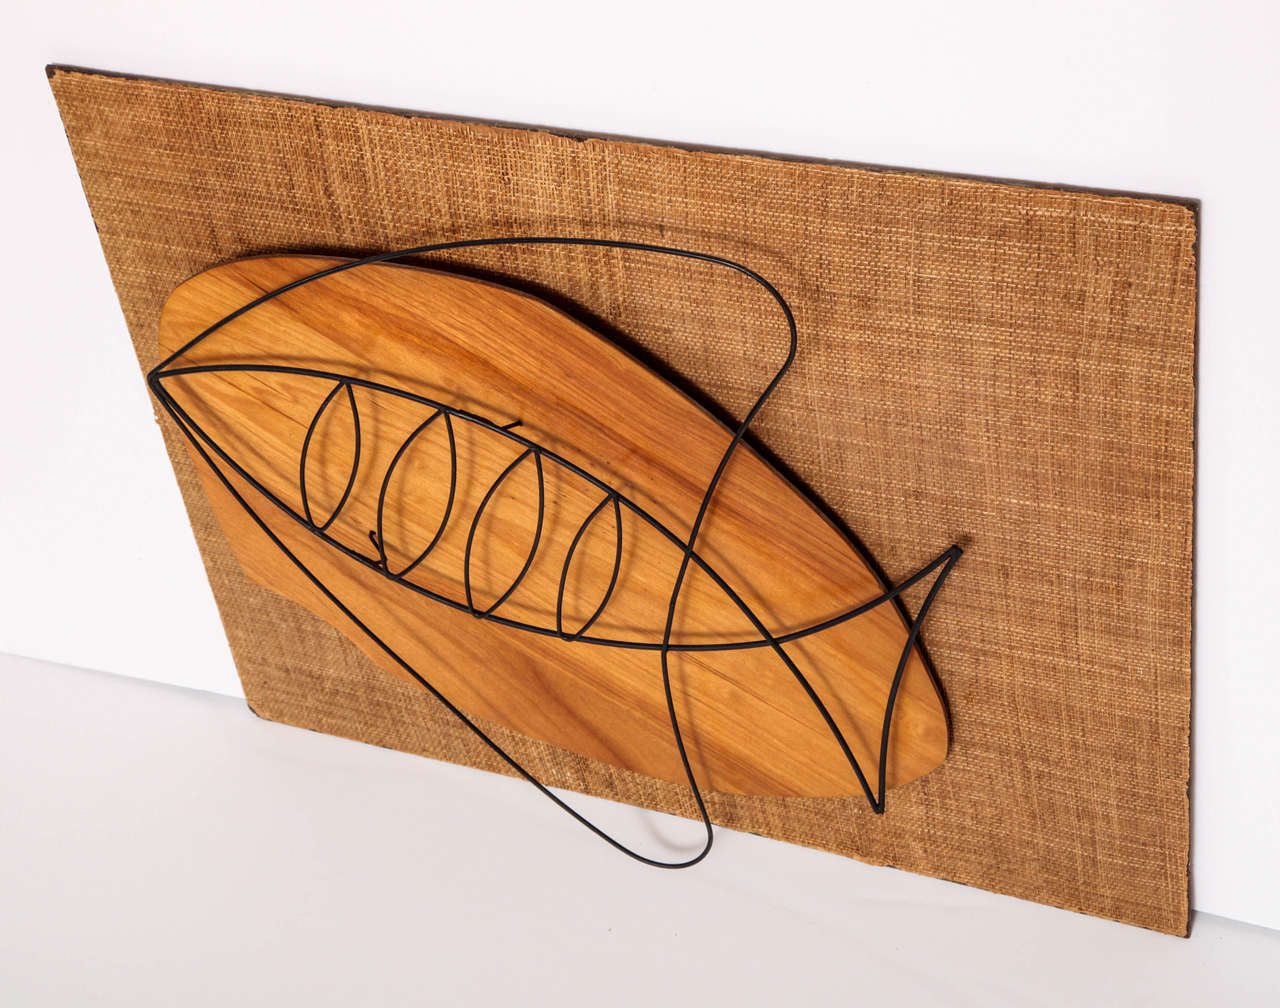 Hand-Crafted Wall Sculpture, circa 1950 For Sale